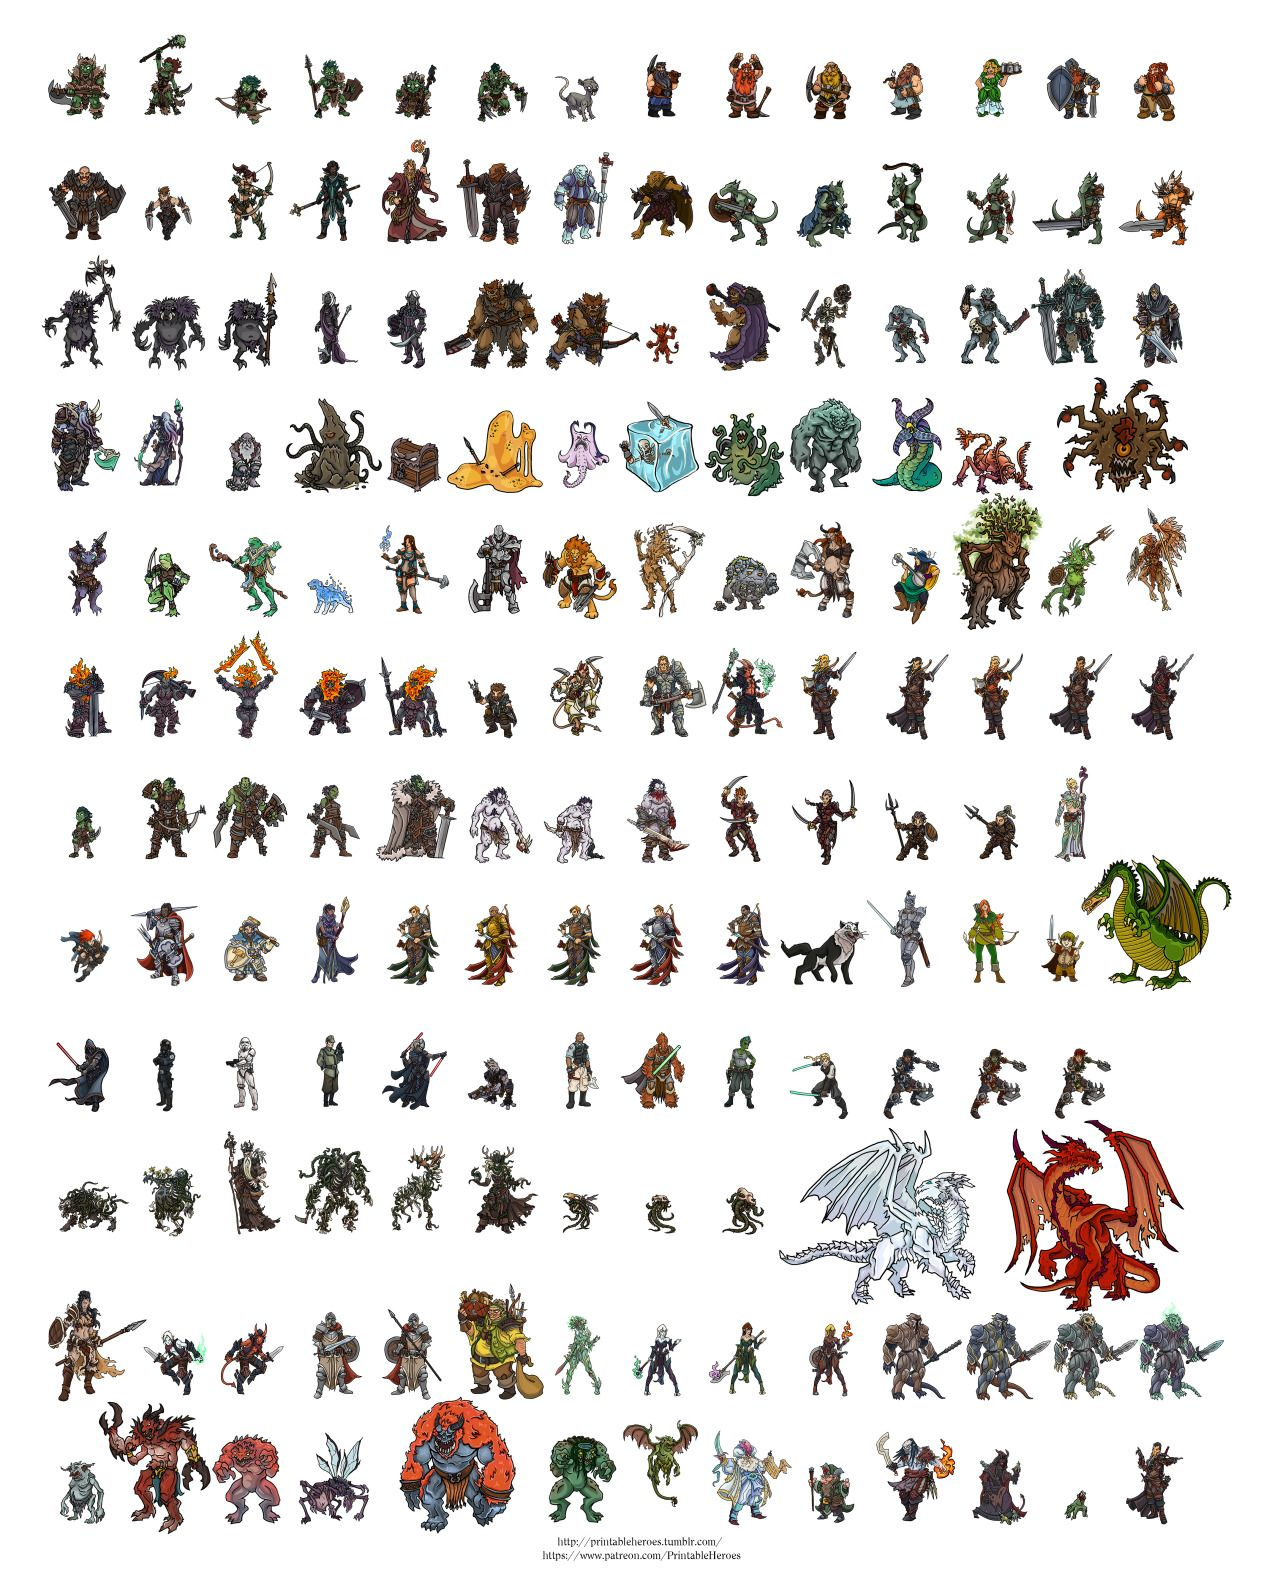 It's just a graphic of Trust Printable D&d Miniatures